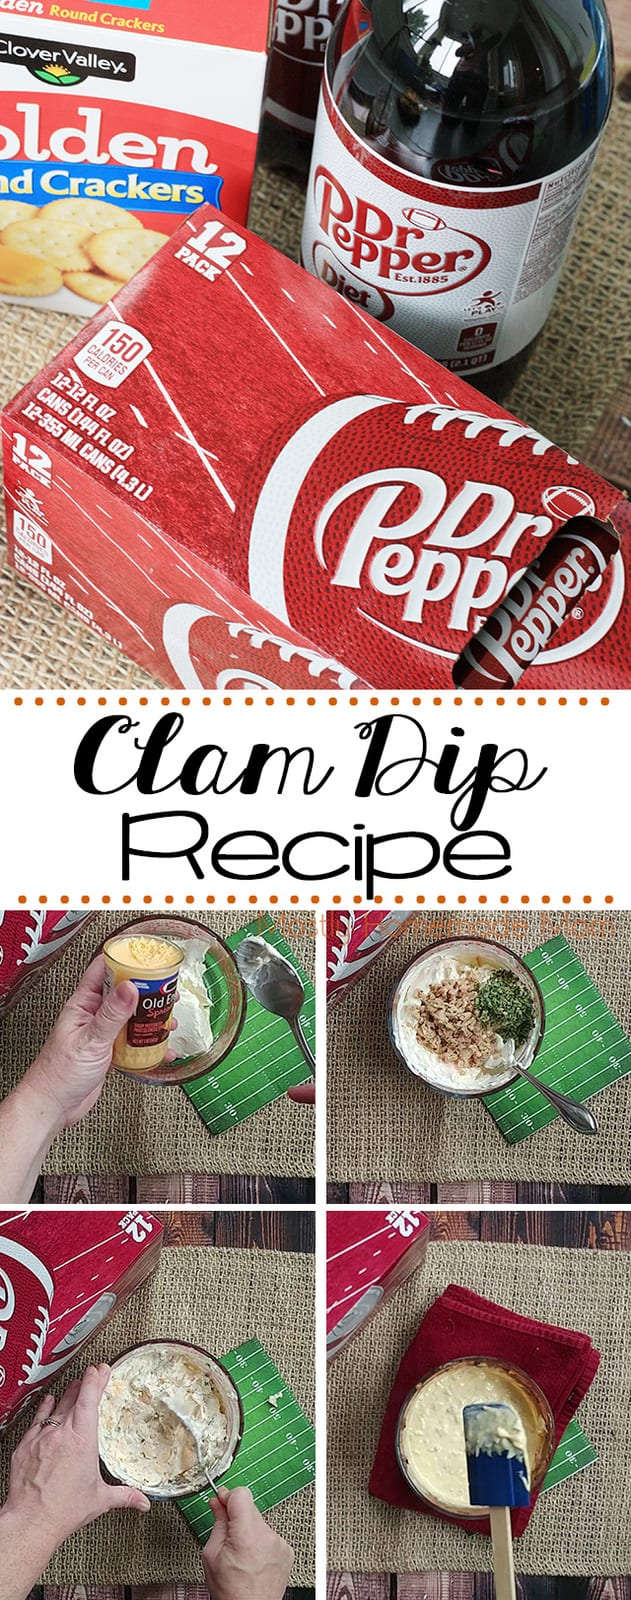 This easy Clam Dip recipe has just four ingredients! Cream cheese, sharp cheddar, minced clams, and chives. Perfect for your next football party!  #mydollargeneralwin #ad #recipe #clamdip #appetizer